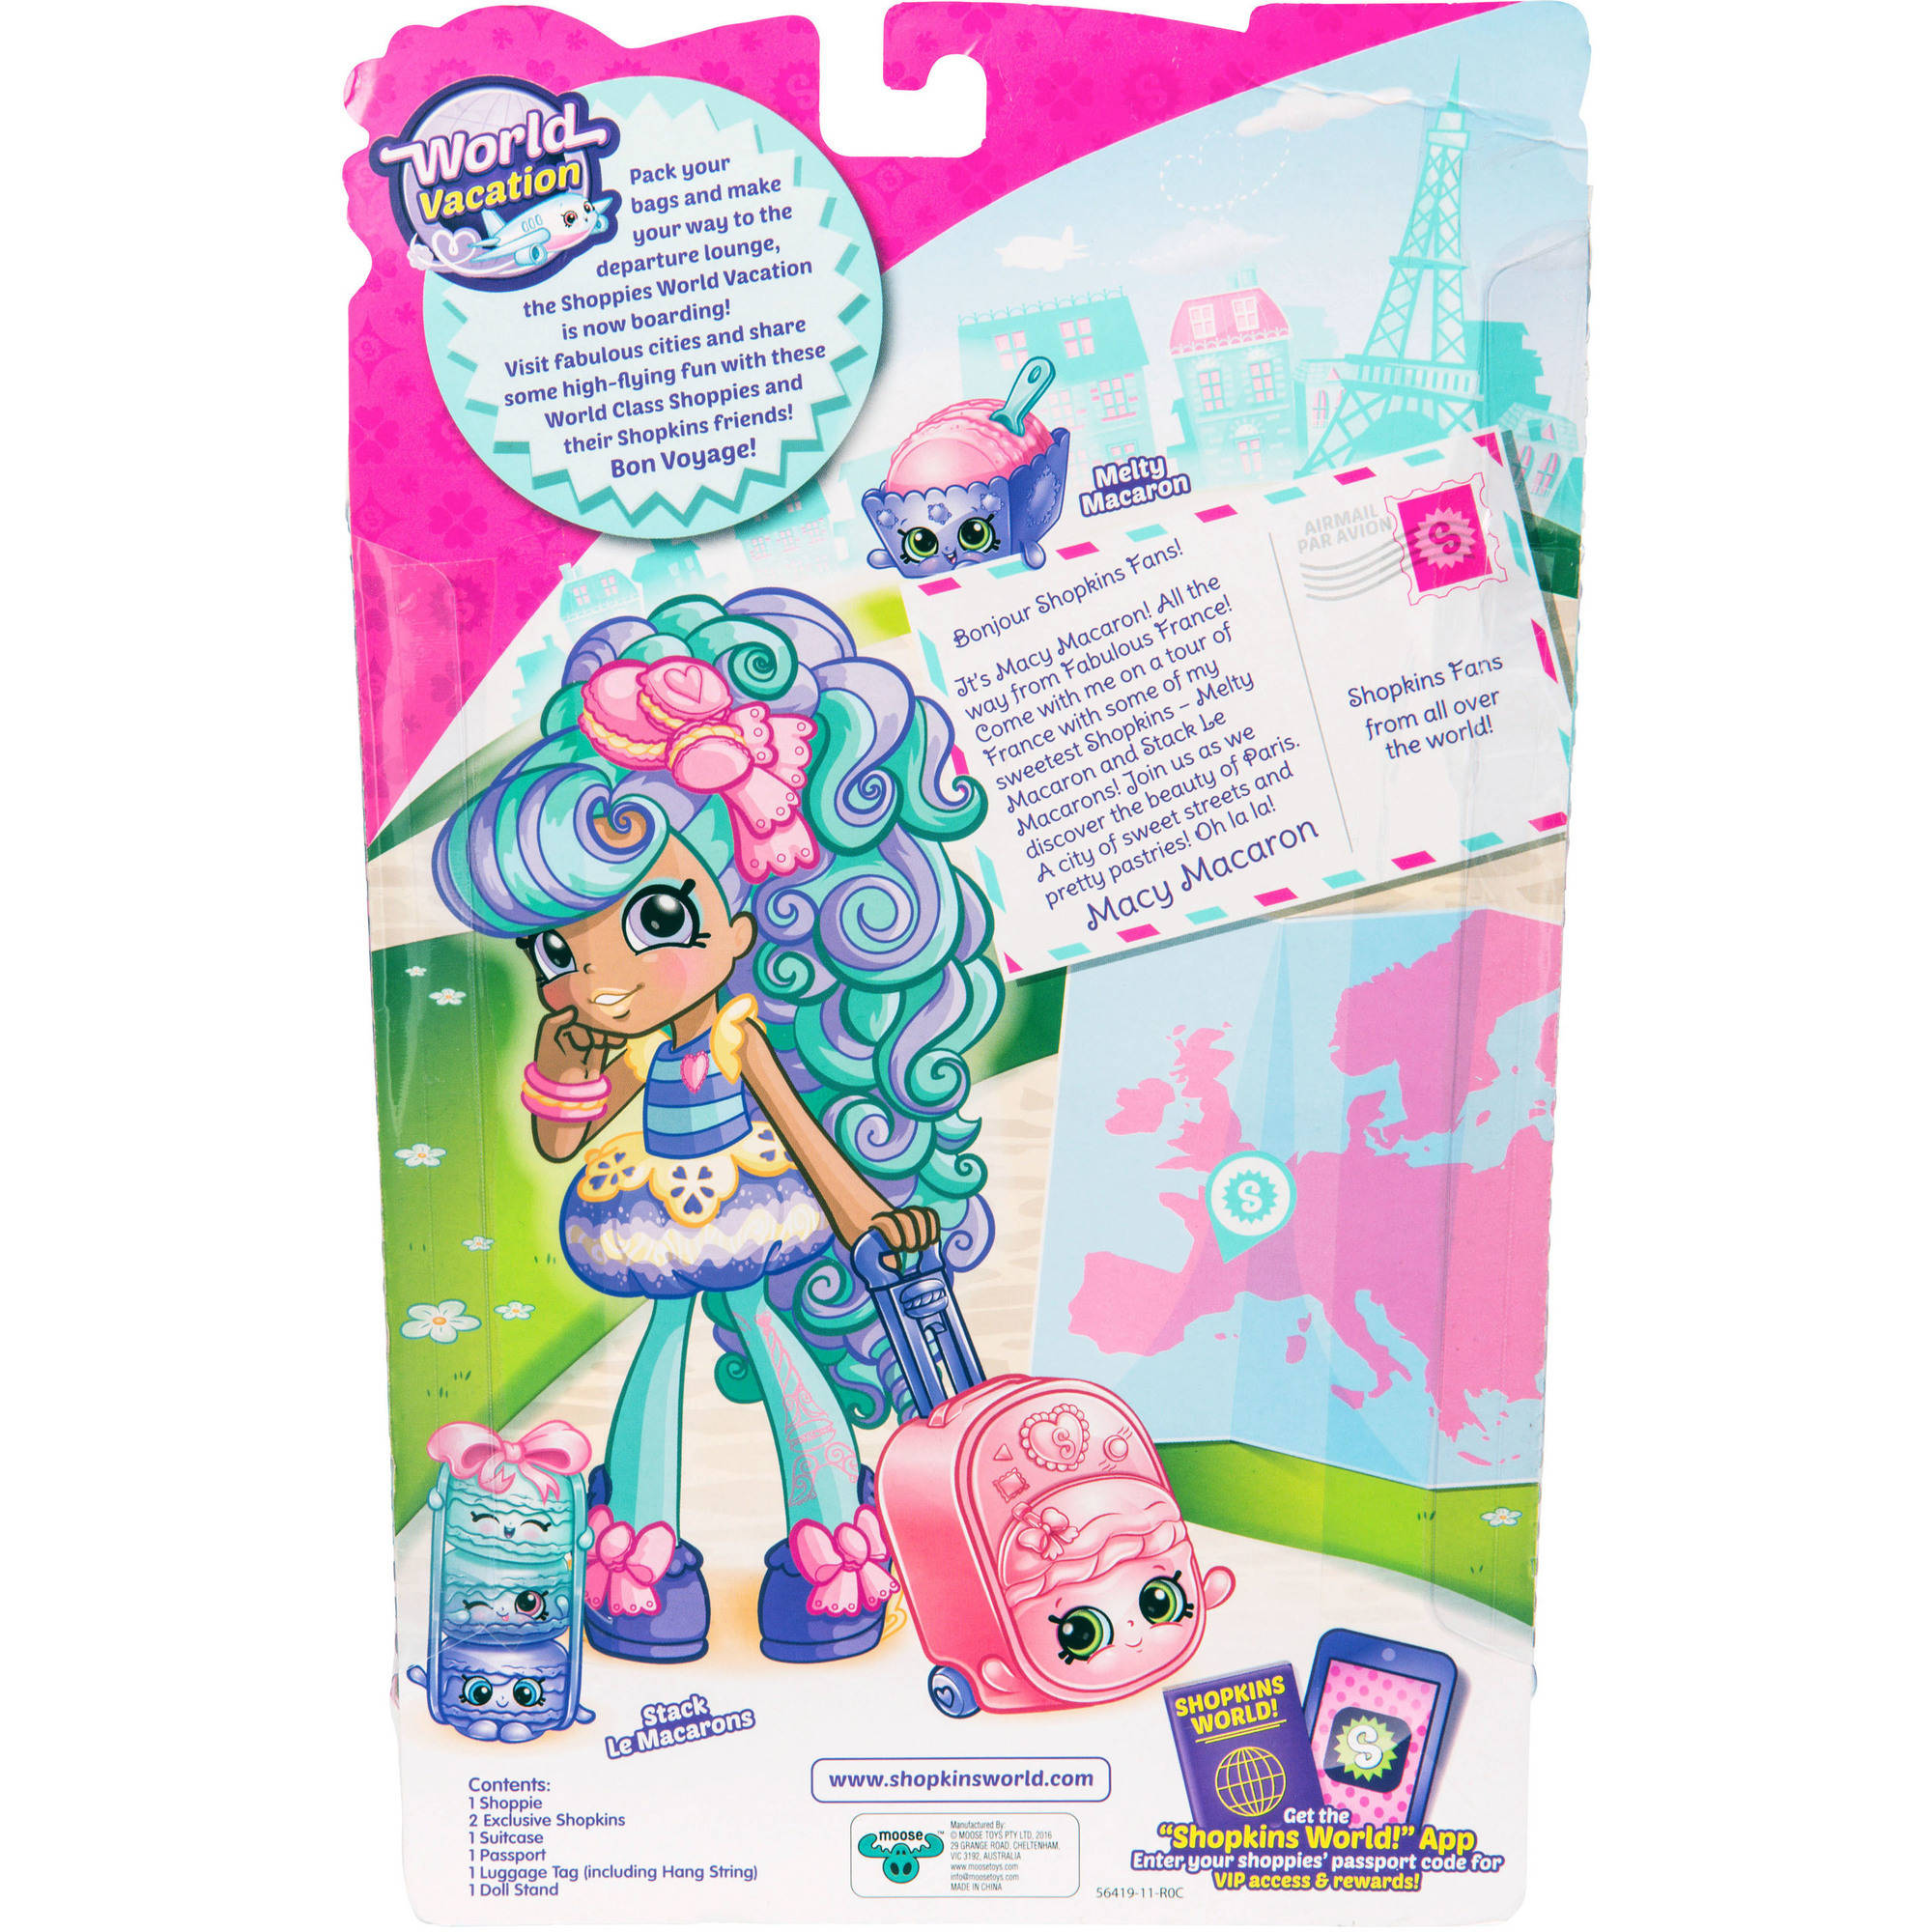 Shopkins Series 8 Wave 1 Doll Europe Macy Macaron Shoppies World Vacation Themed Dolls